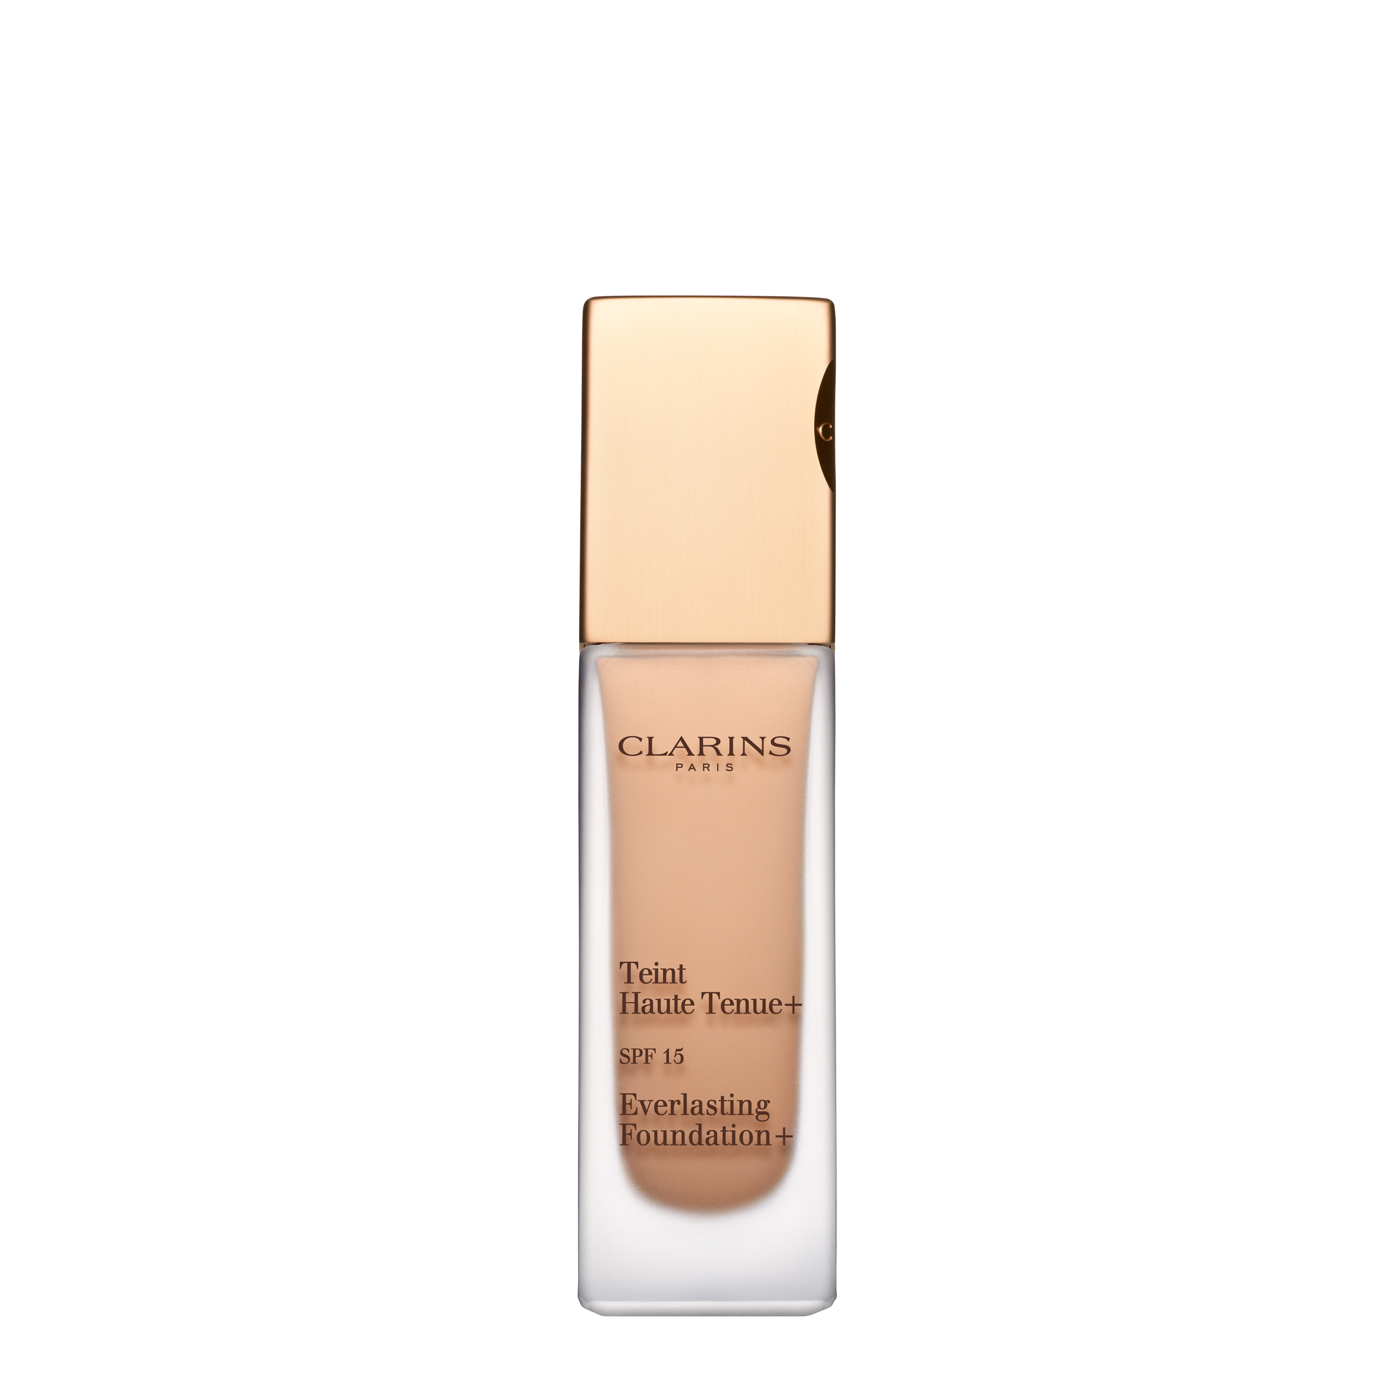 Everlasting Foundation + - Clarins for Spring 2015. SPF15, 18 hour wear